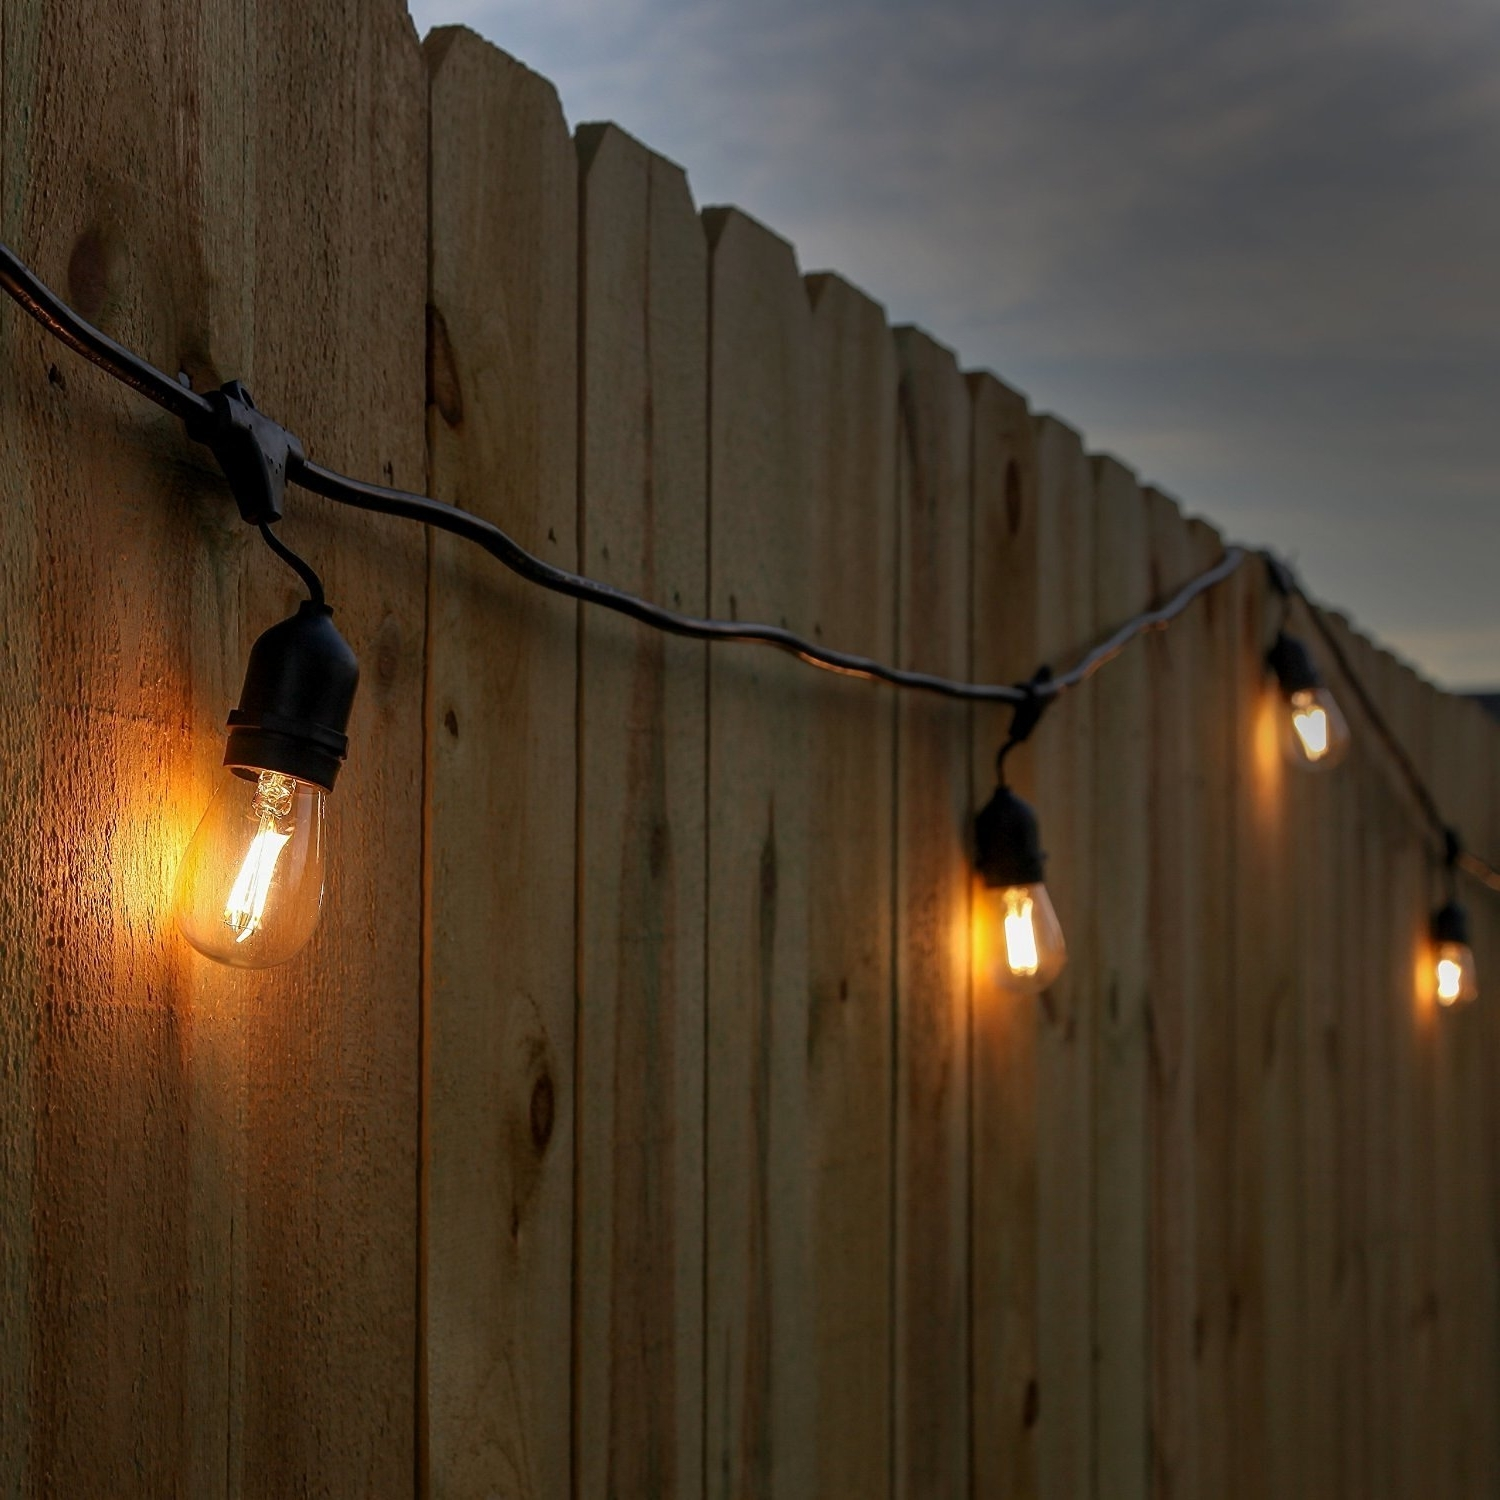 Well Known Newhouse Lighting 48 Foot Outdoor String Lights, Led Bulbs Included Inside Hanging Outdoor Lights On Wire (View 19 of 20)